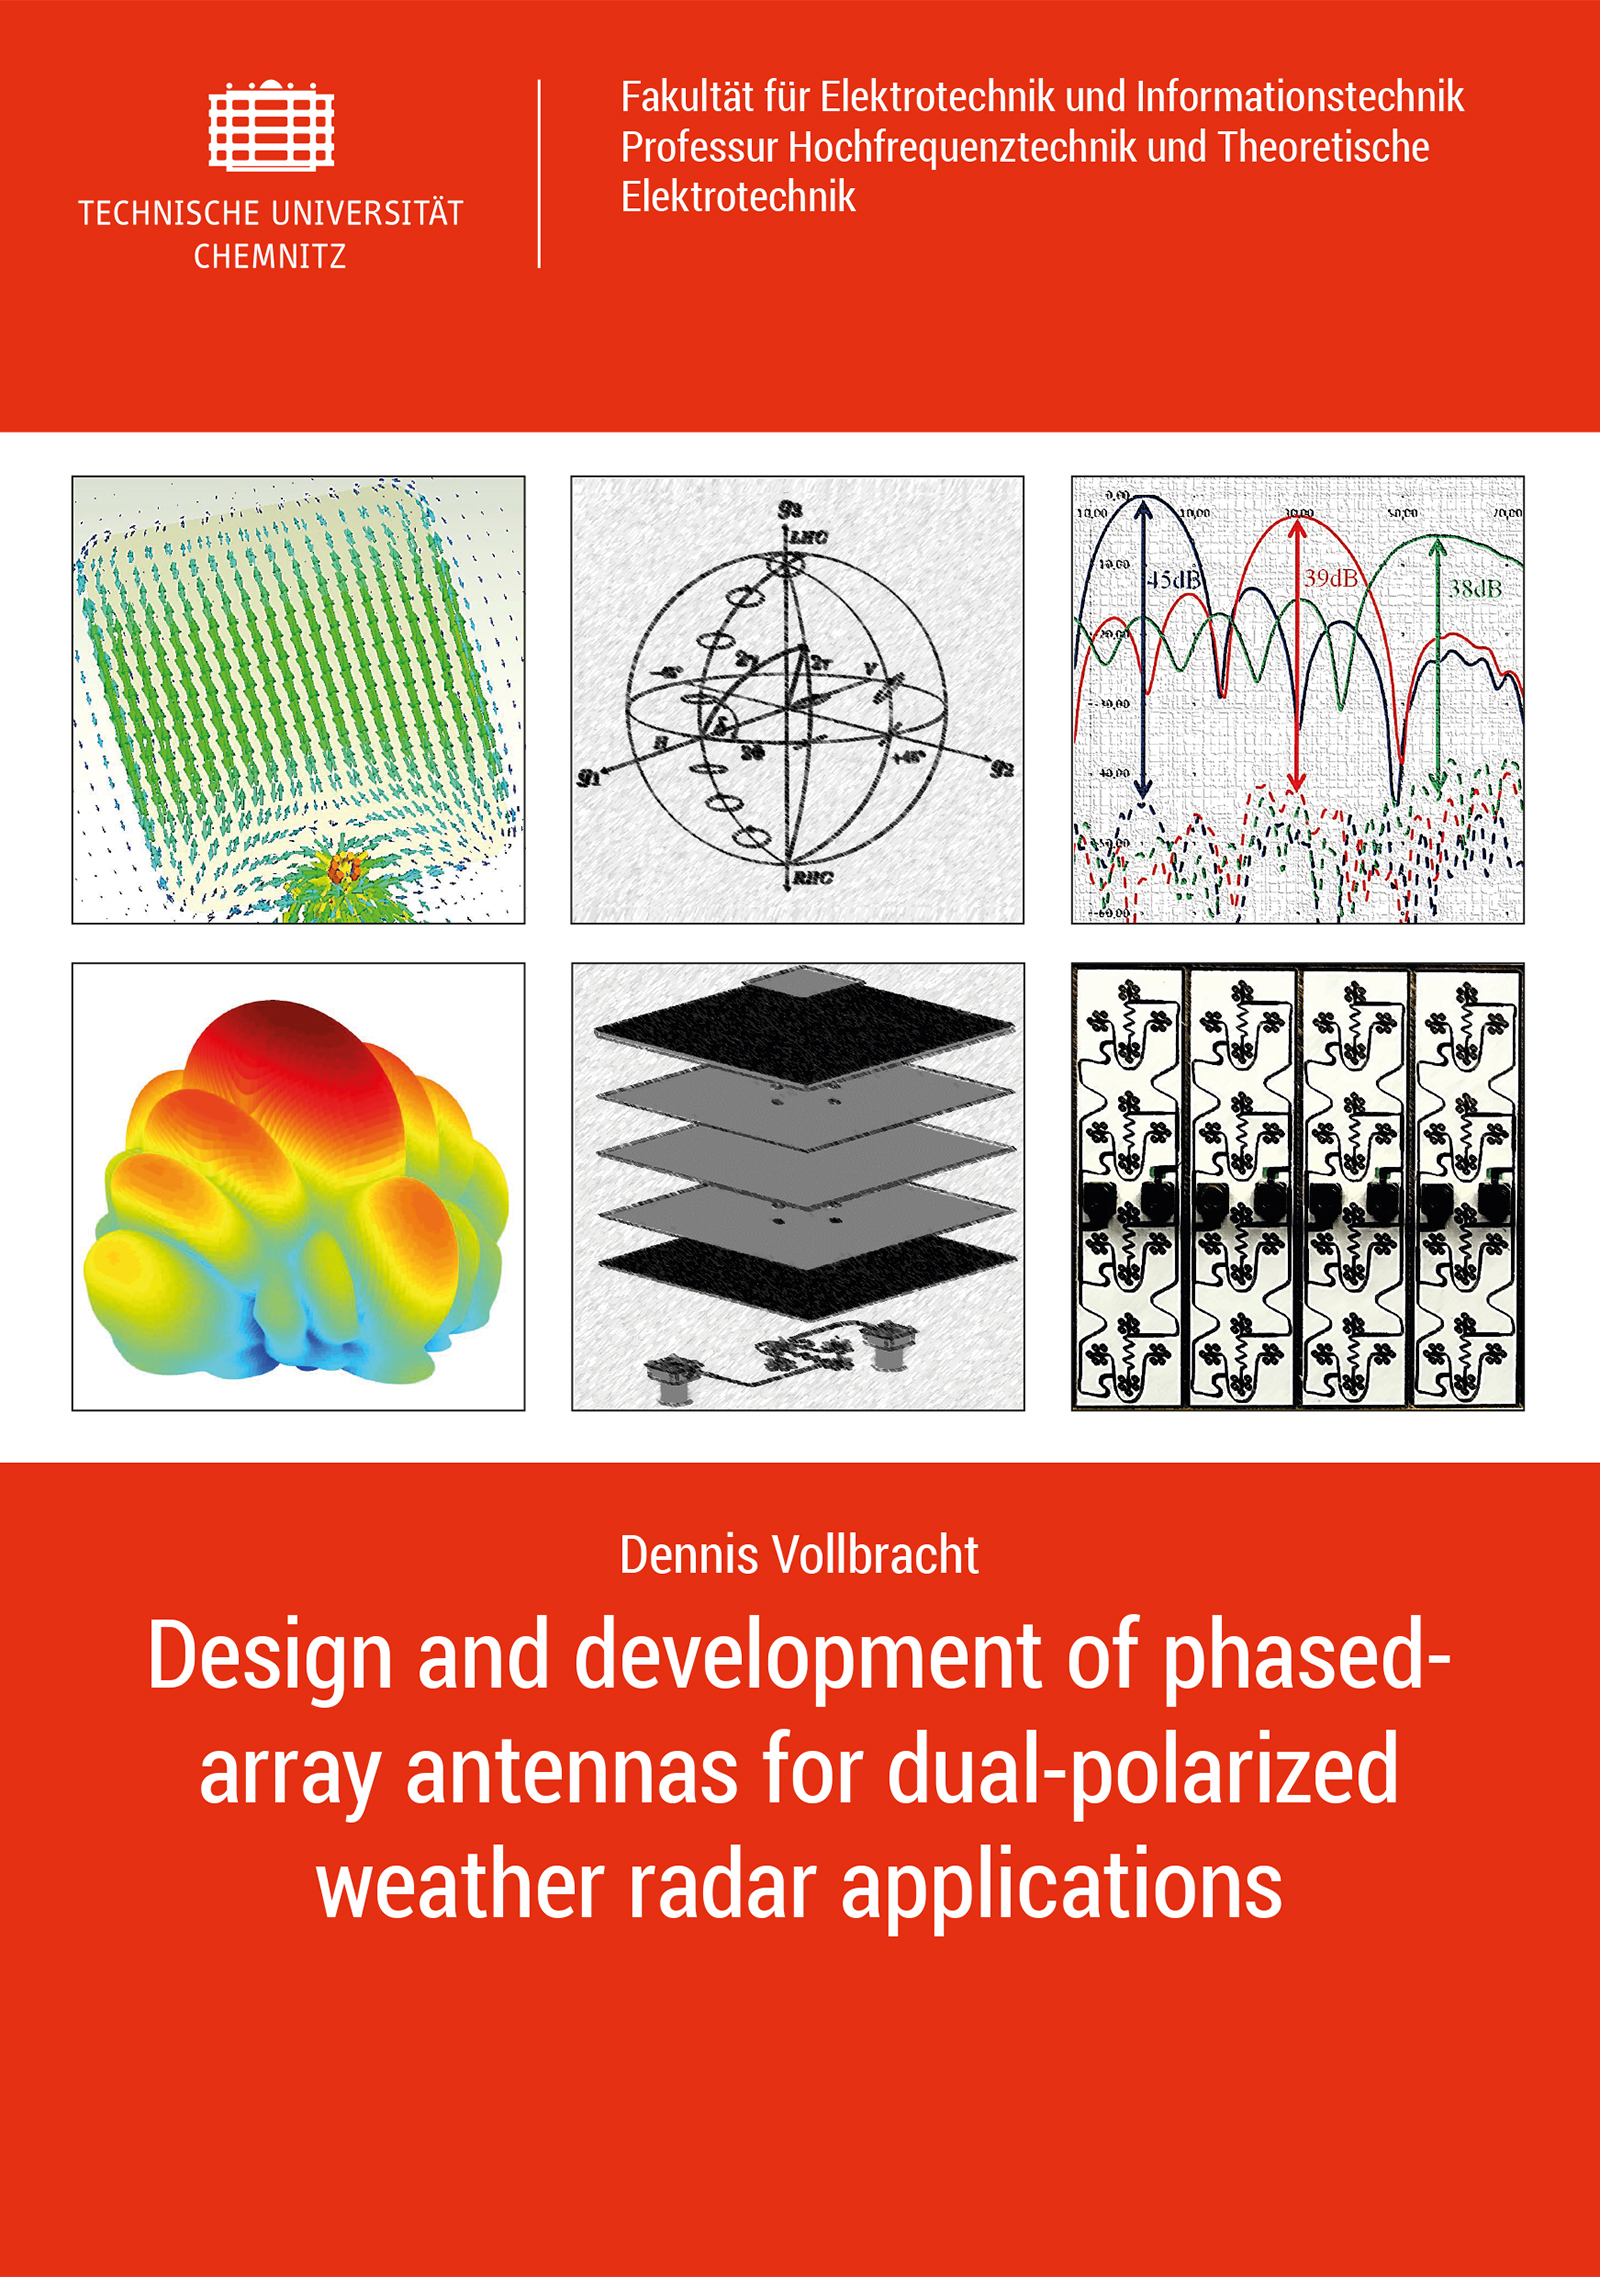 Cover: Design and development of phased-array antennas for dual-polarized weather radar applications